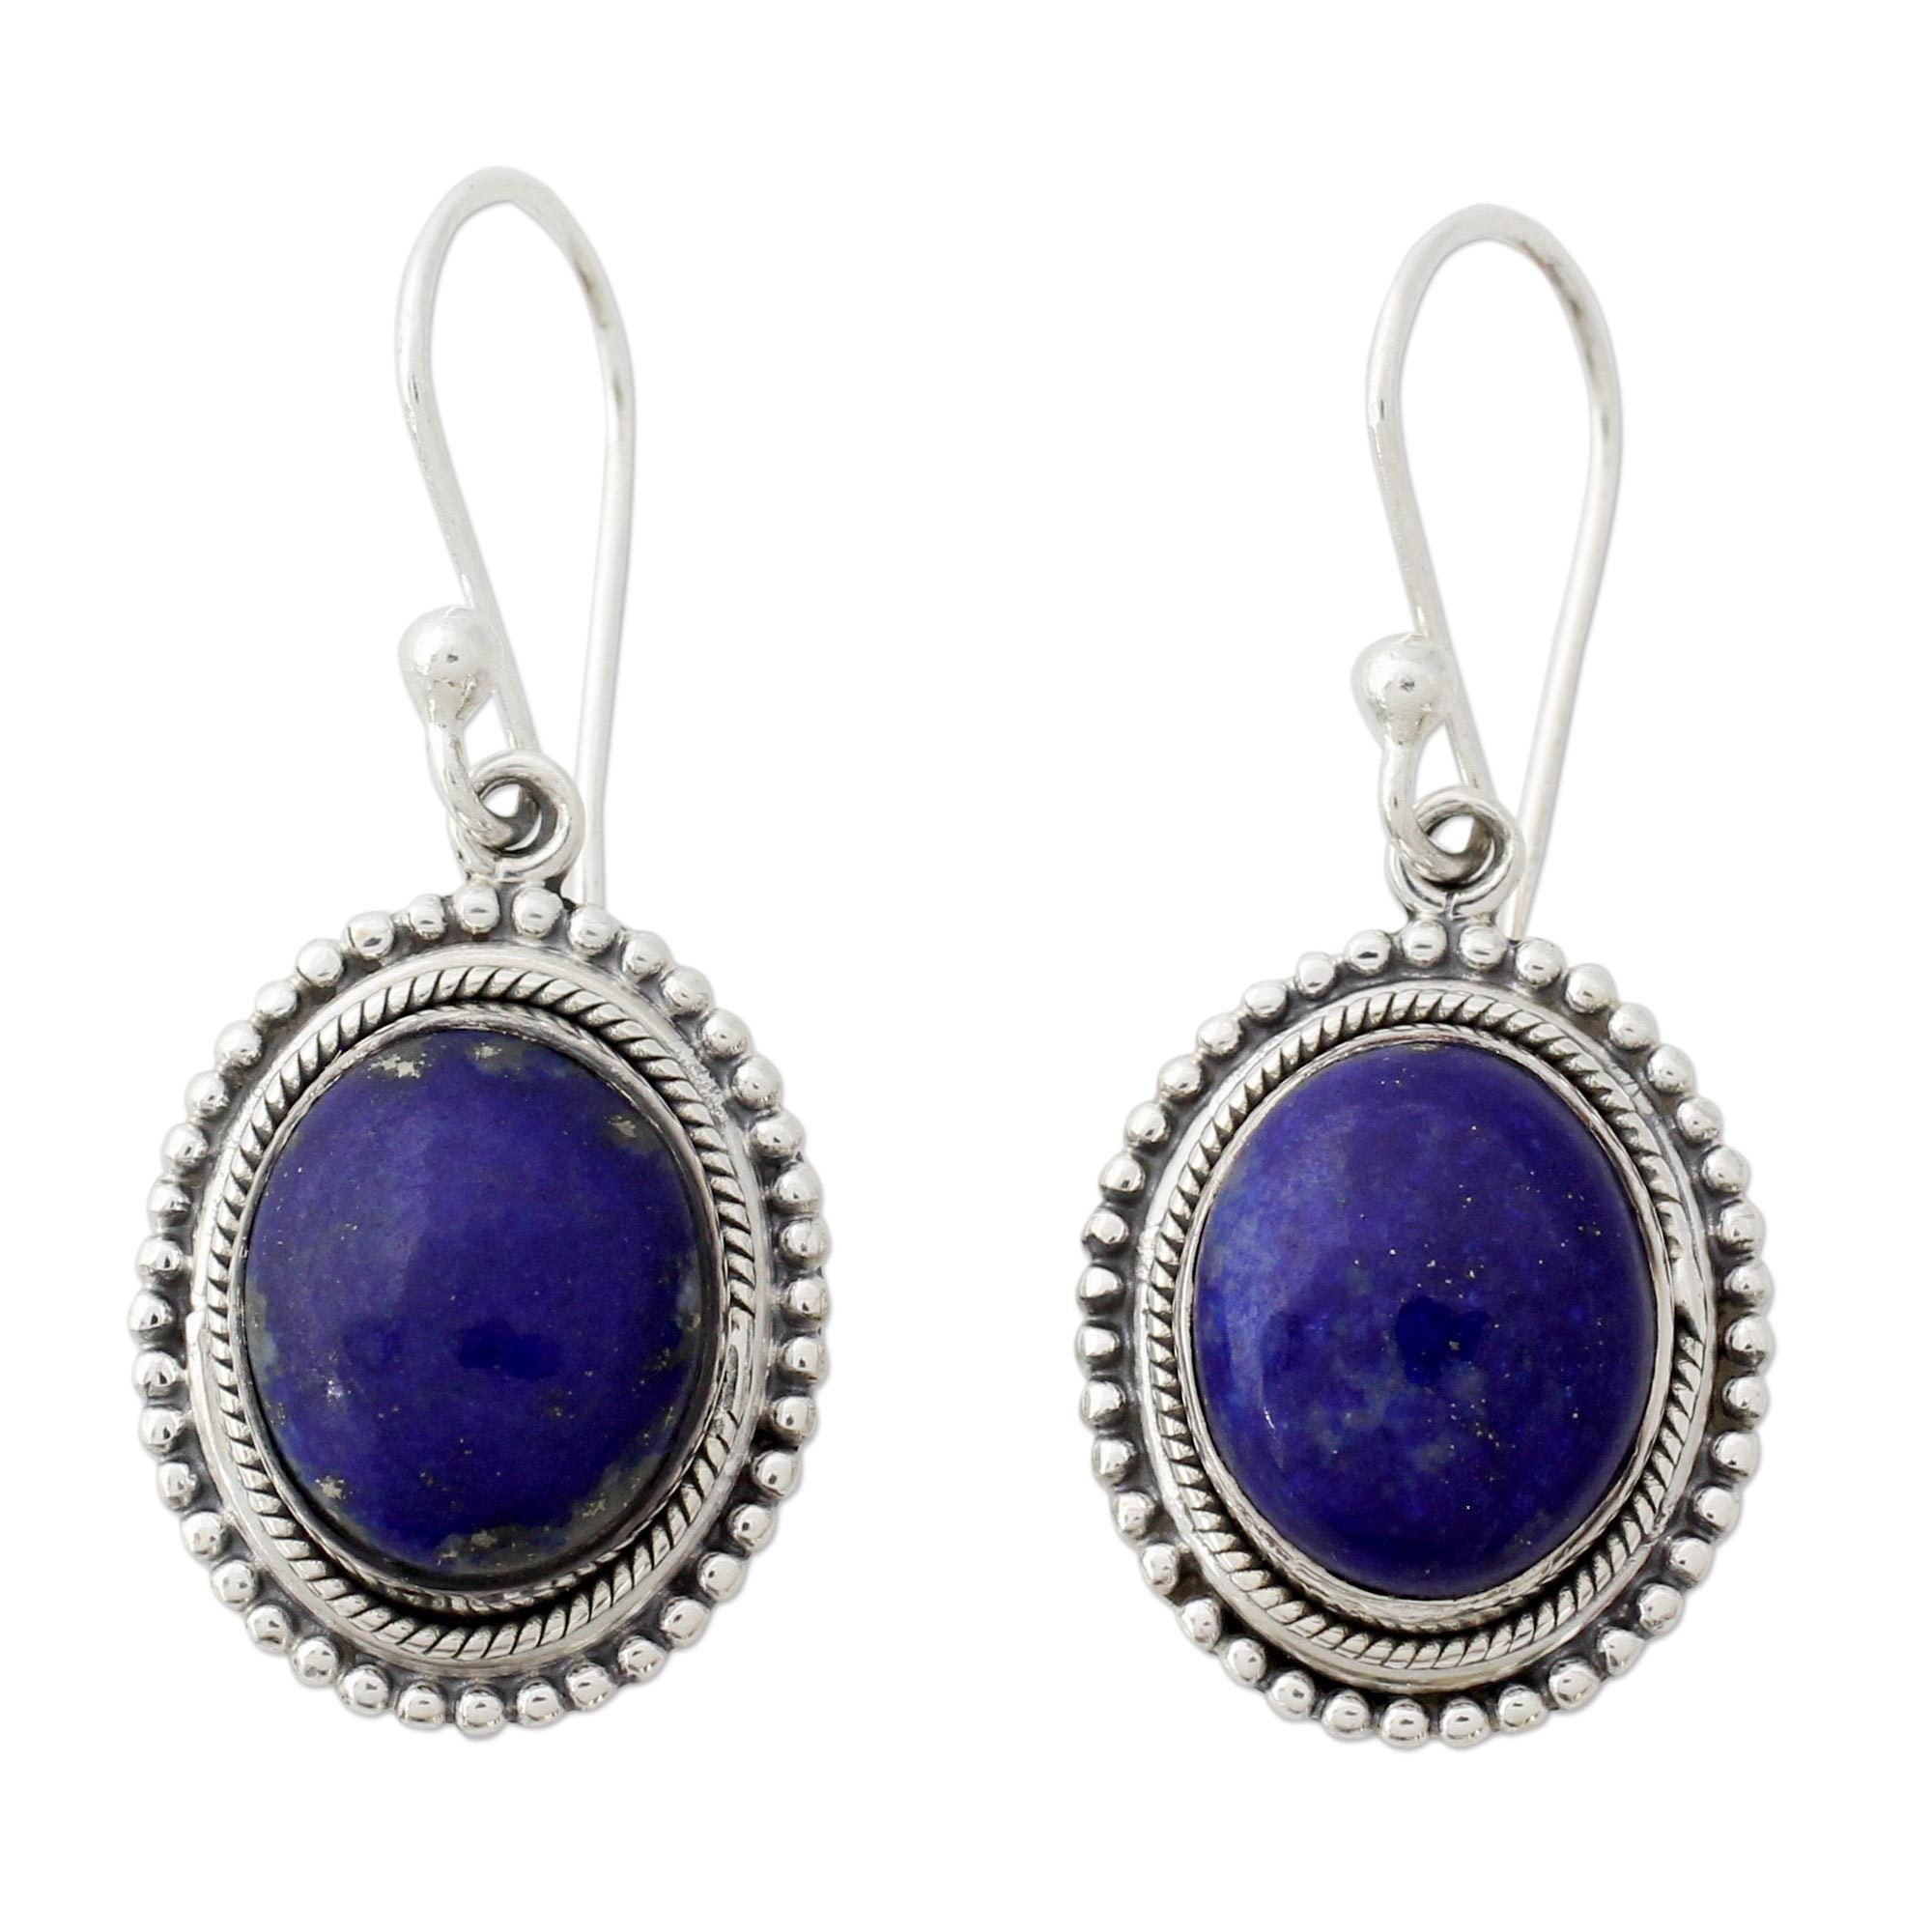 shop sterling silver earrings lapis uk handcrafted products clarity spo lazuli true india online indi